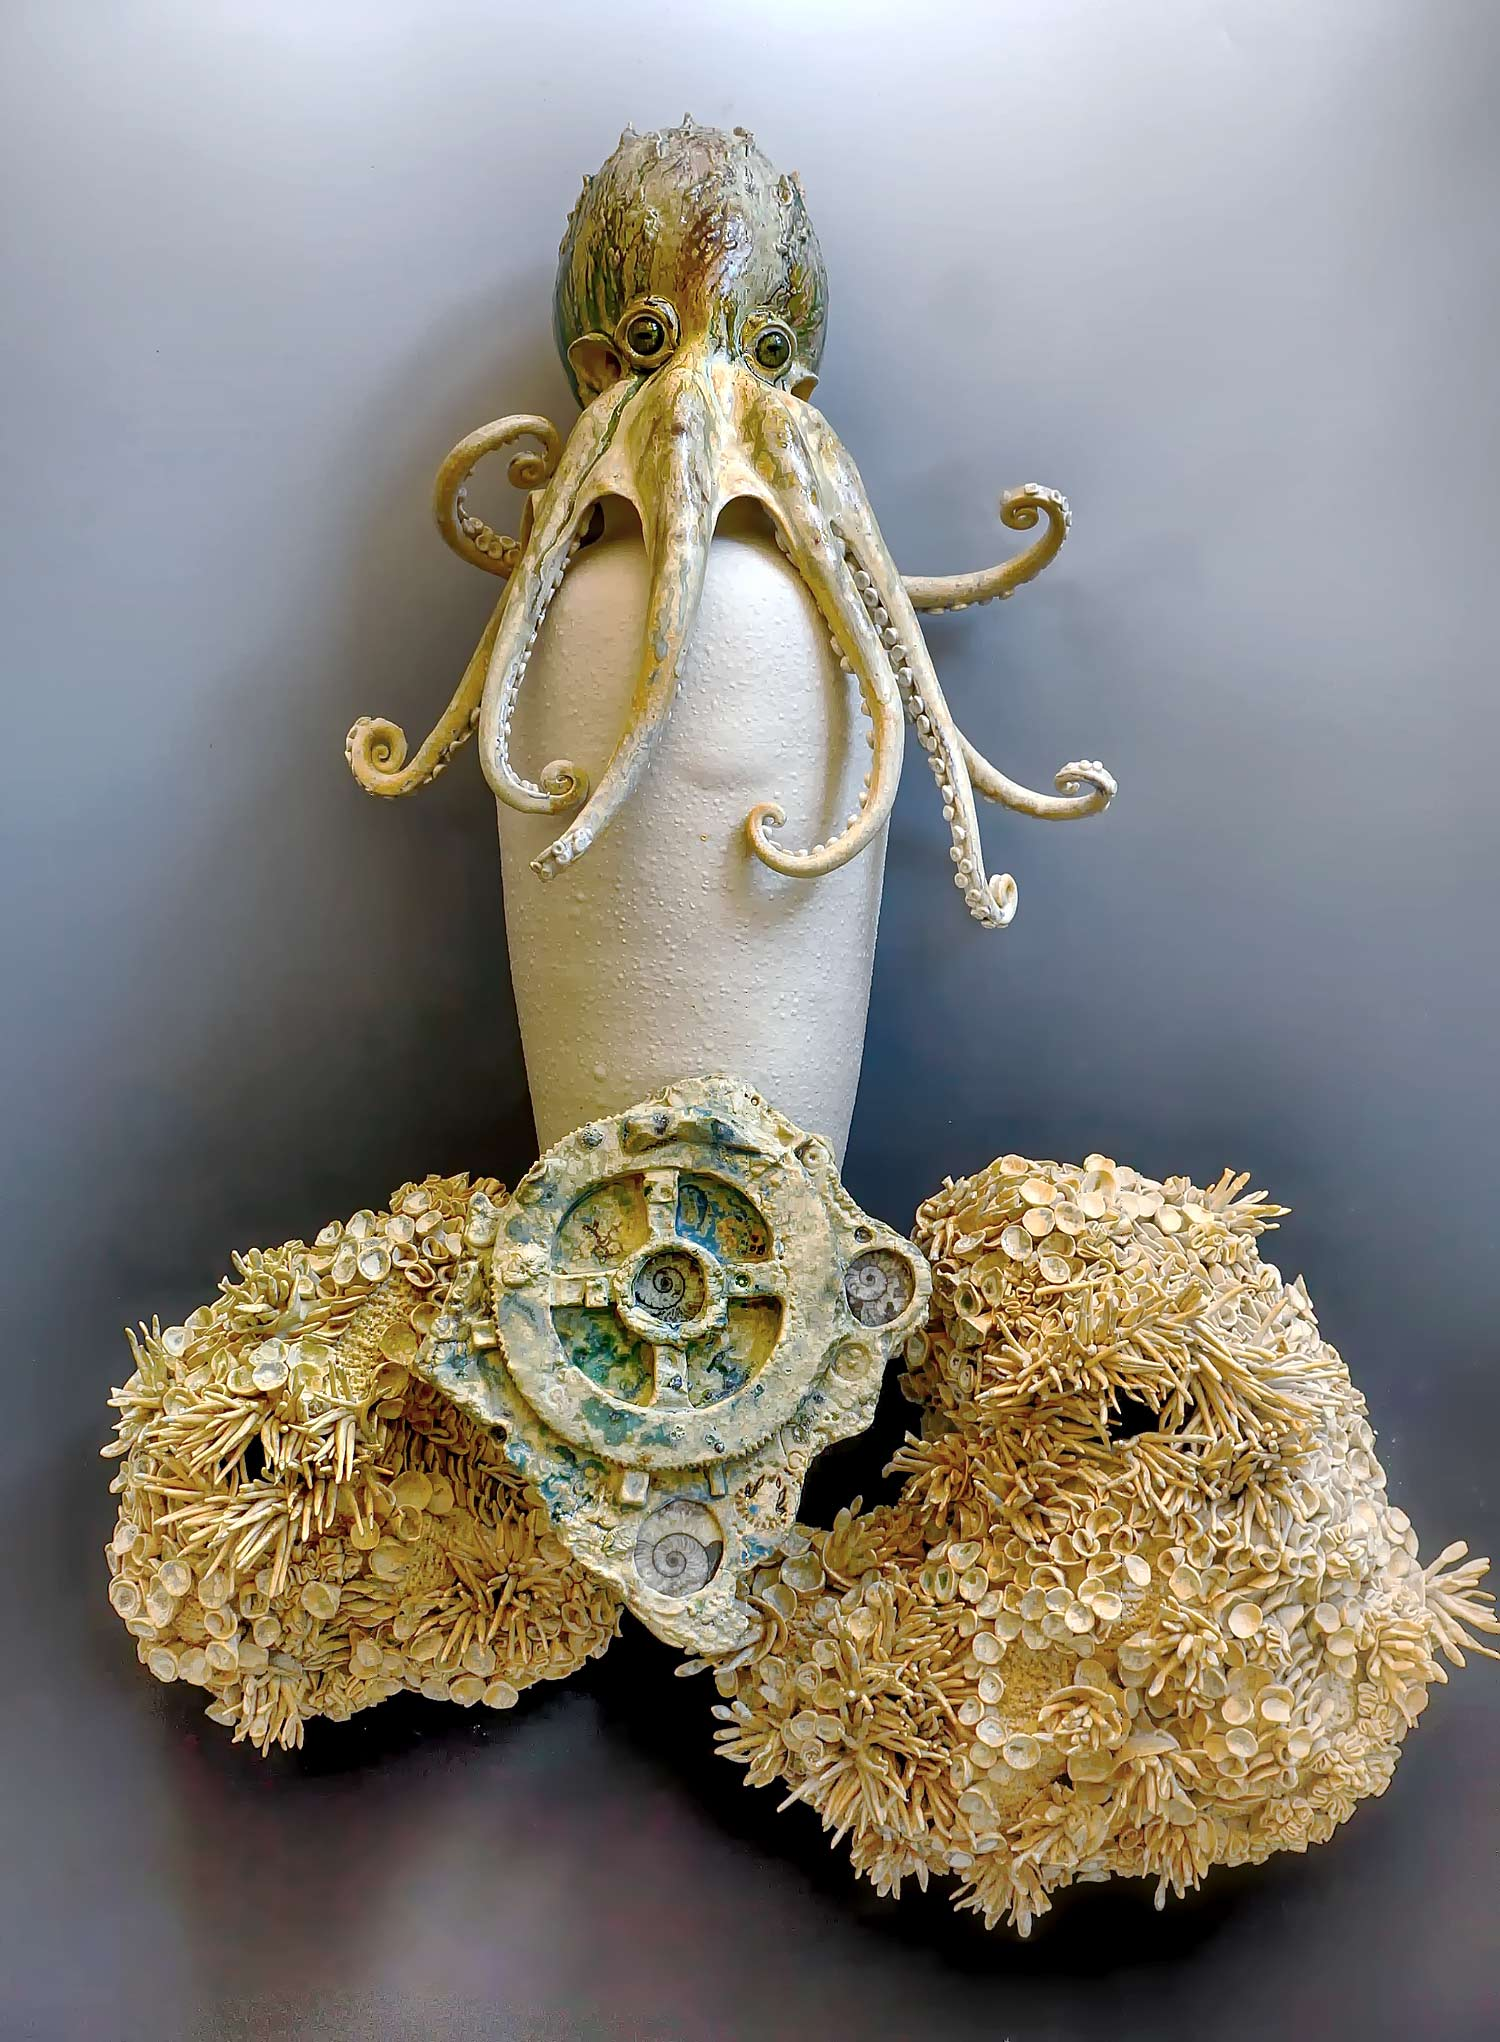 Wall hanging Octo - Amphora with Ammonite Embedded Antikythera Mechanism. 28 inches tall.